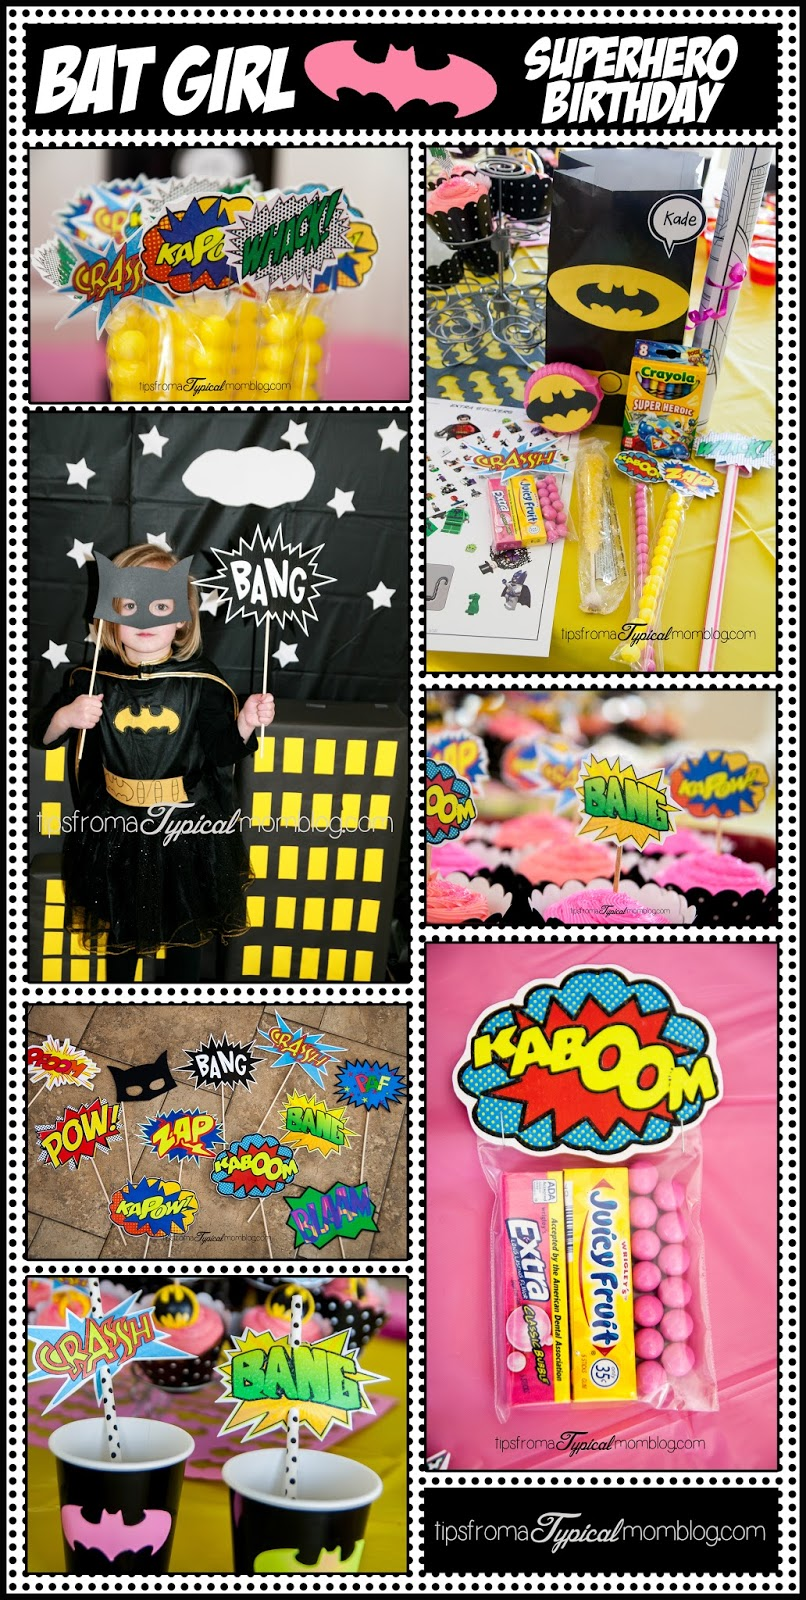 Superhero Birthday Party Ideas For A Girl Who Loves Bat Man Great Free Printables And